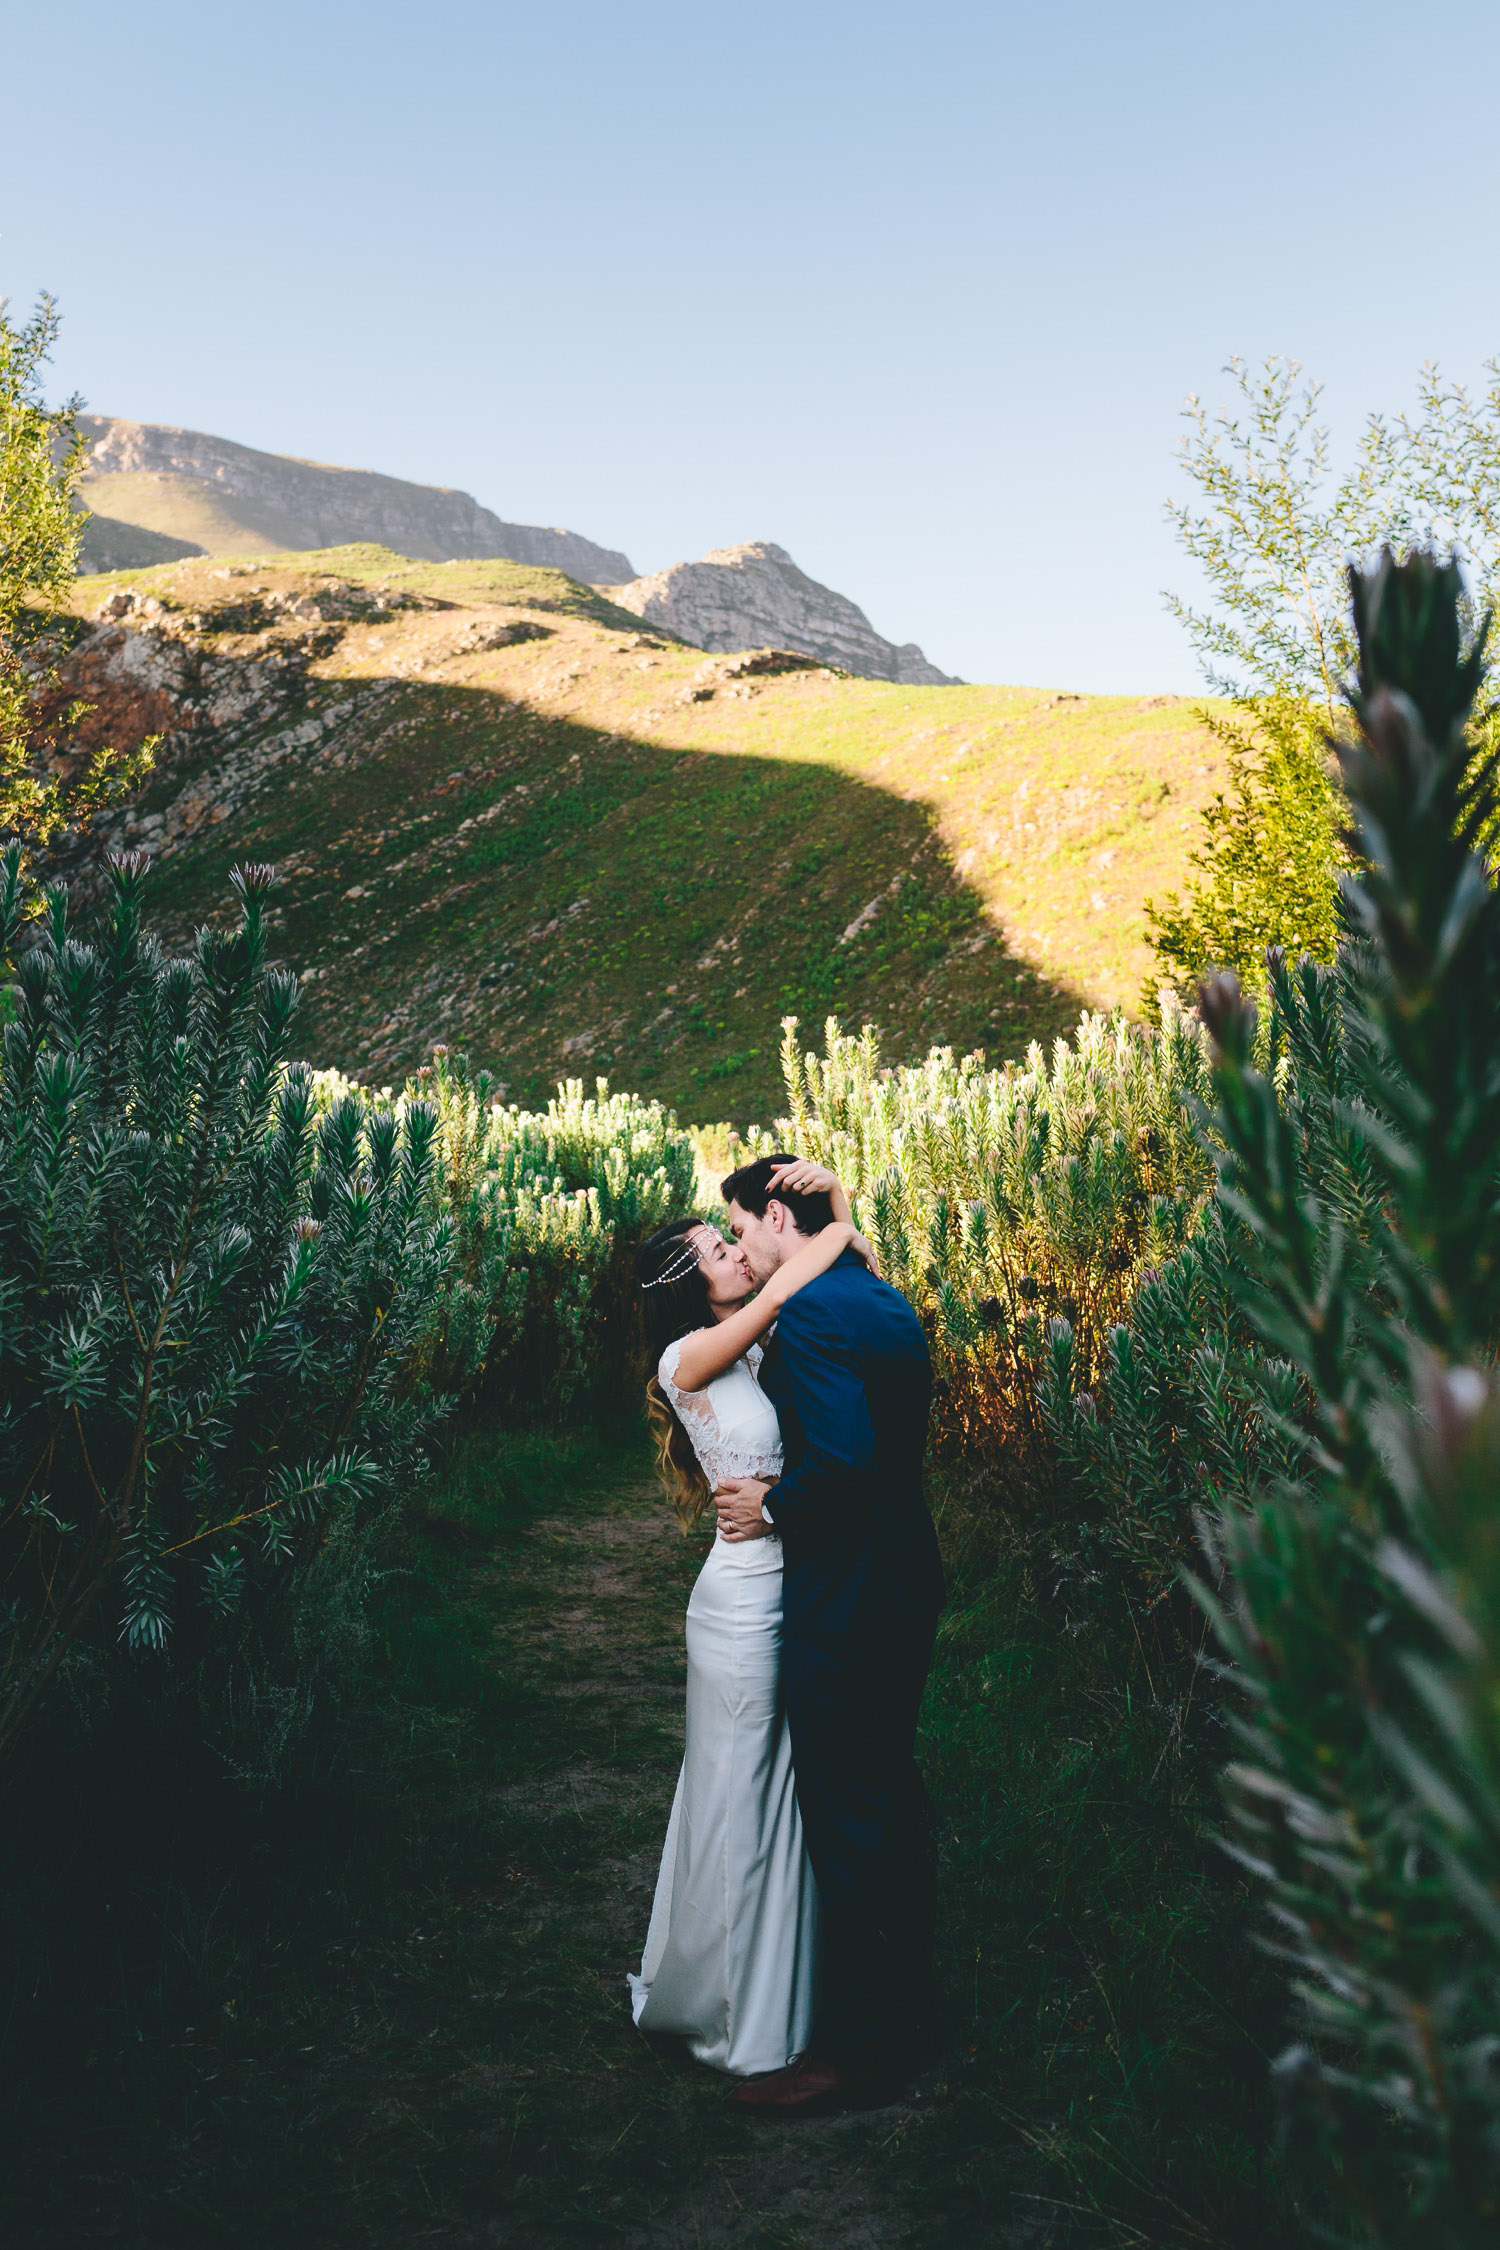 greyton-wedding-western-cape-photographer-river-bed-proteas-south-african126.jpg